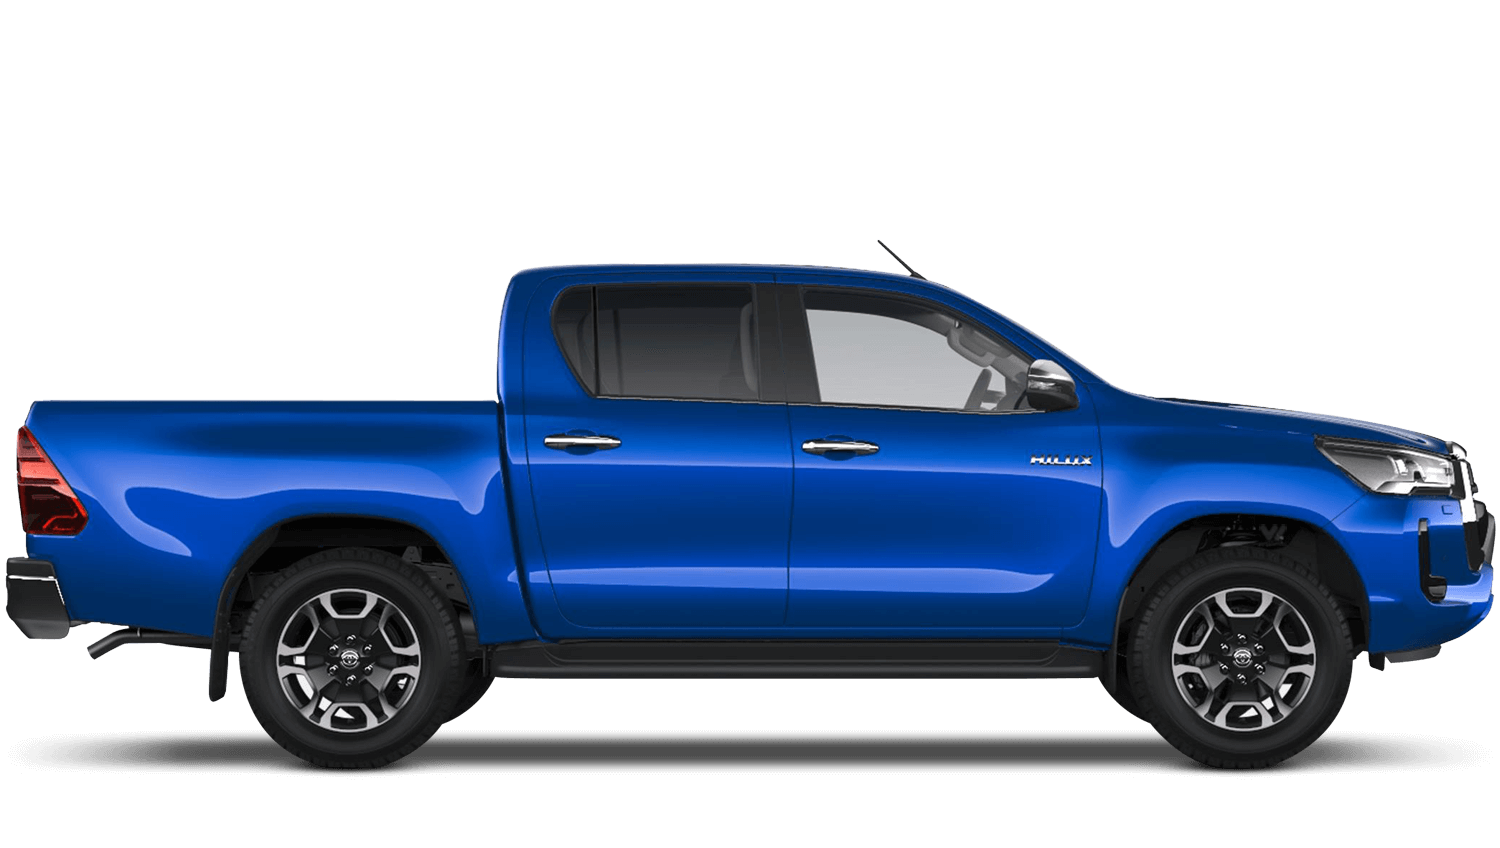 Hilux Invincible X Business Offer